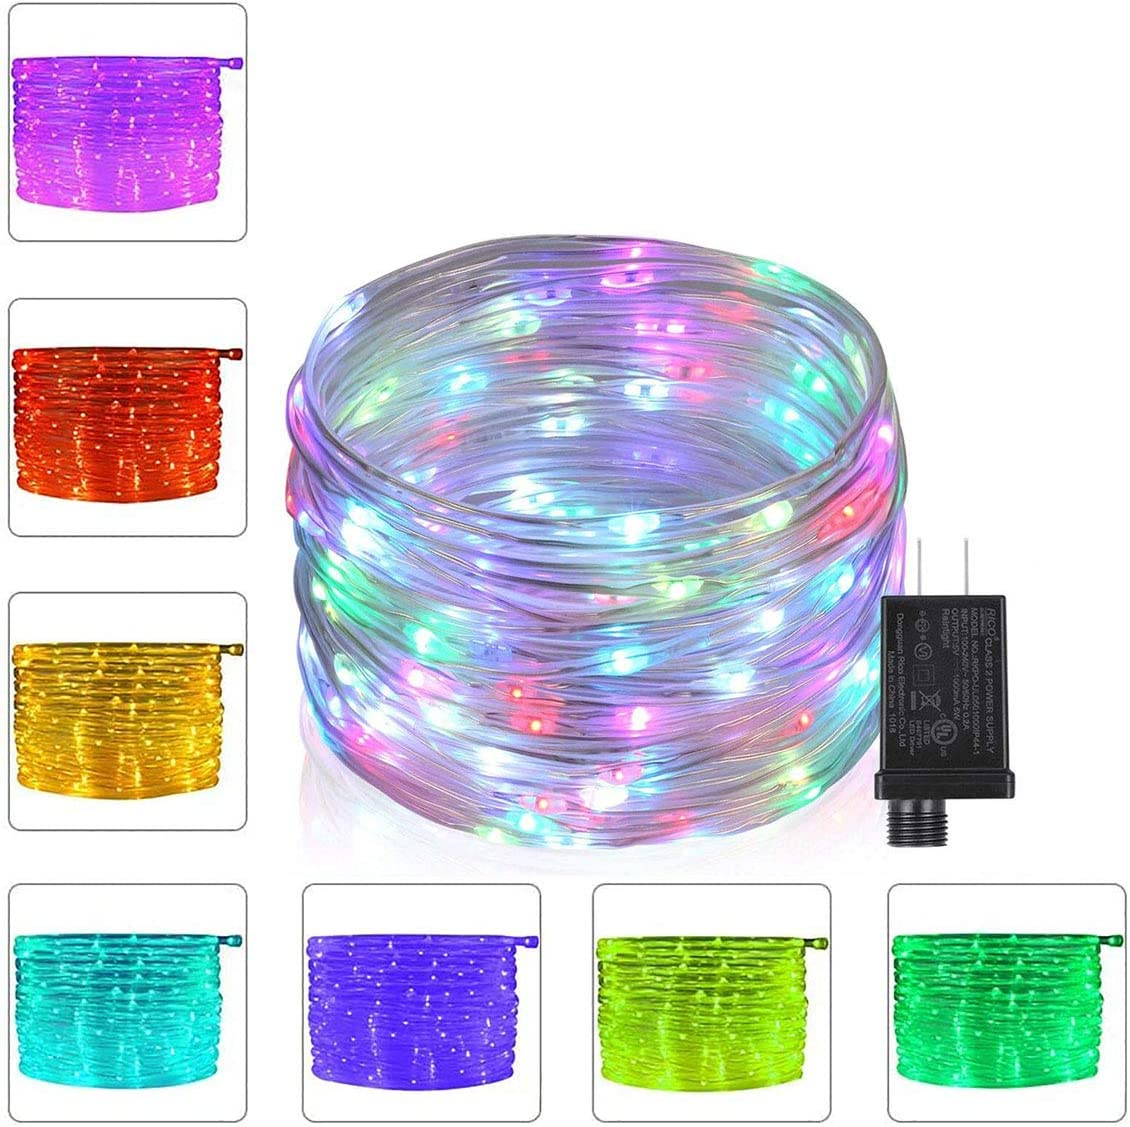 Foxdam 66Ft Led Rope Lights Outdoor Fairy String Lights Plug in with 200 LEDs,16 Colors Changing Waterproof Starry Fairy Lights for Garden,Bedroom,Patio,Home Decor